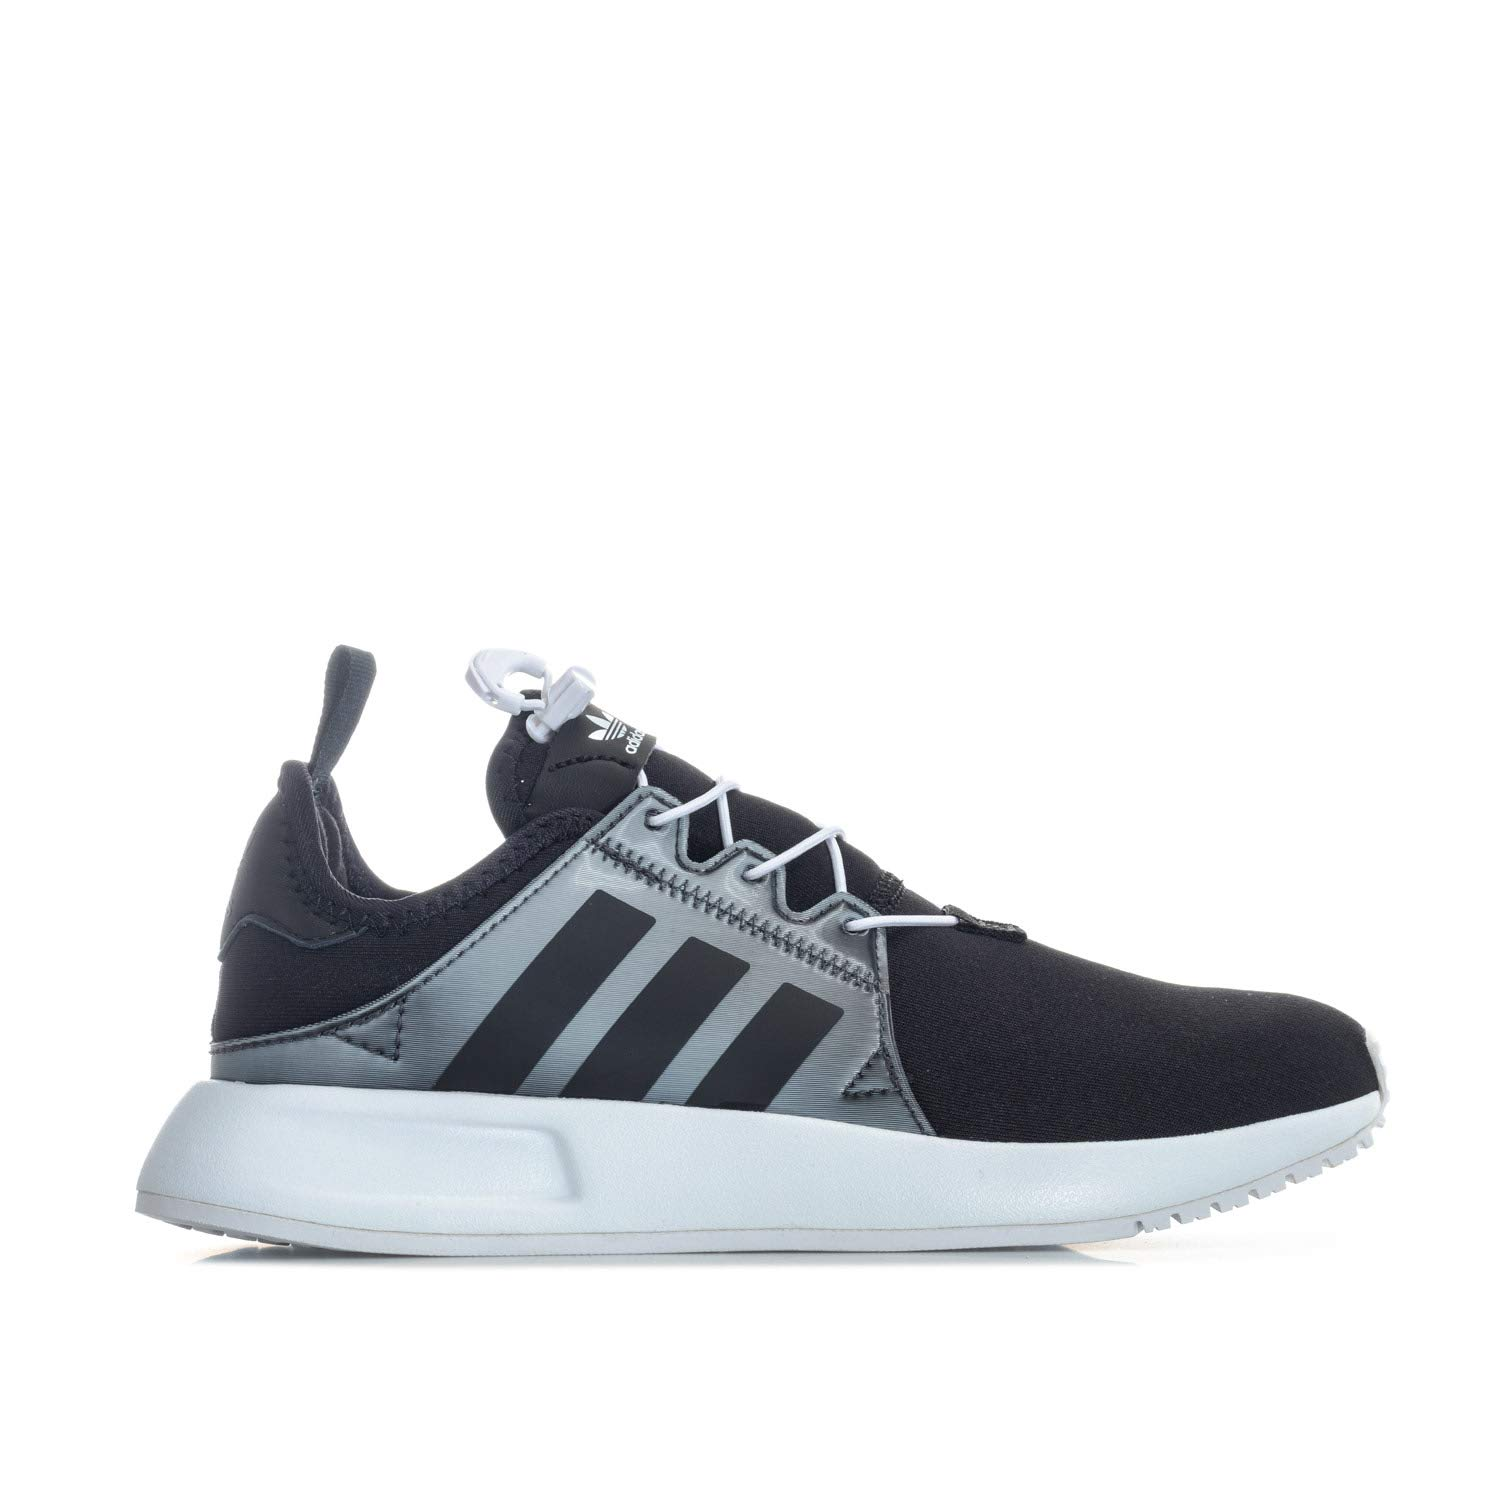 adidas Originals Boy's X PLR Lenticular Trainers US6 Black adidas Originals Boy' s X PLR Lenticular Trainers US6 Black